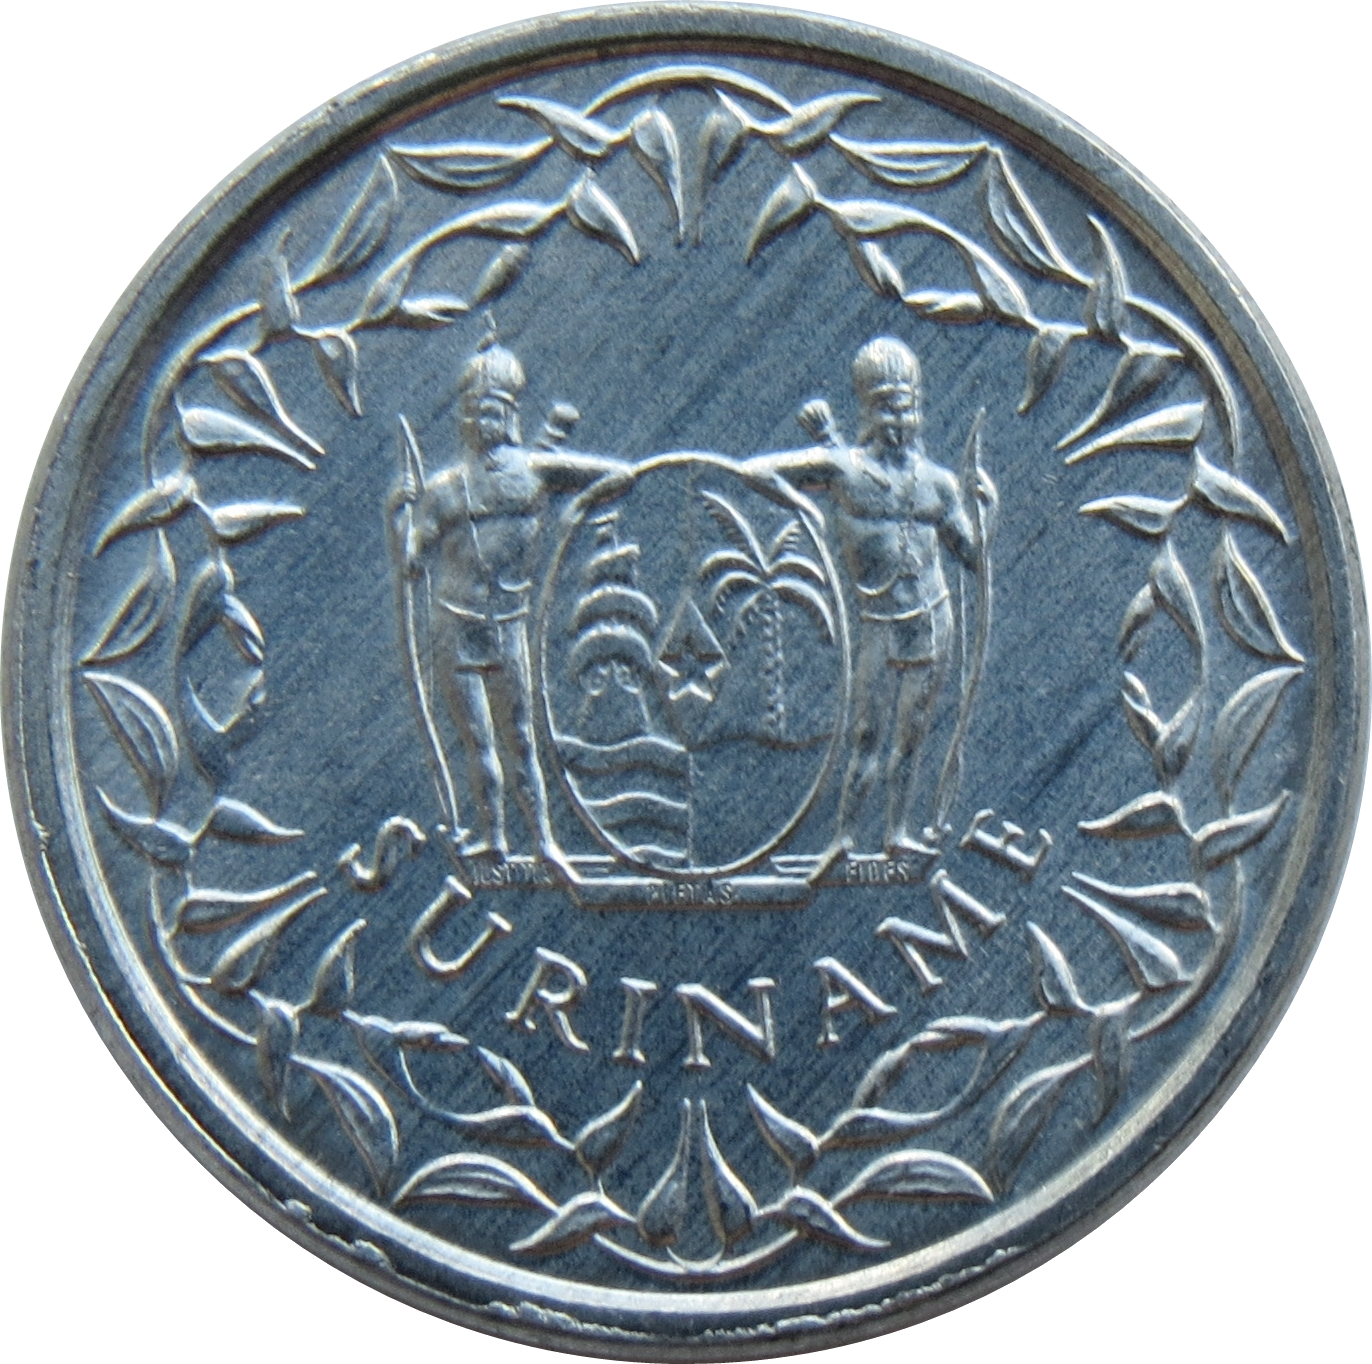 1 Coin Only Beautiful! 42 Available 1977 Suriname 1 Cent High Grade